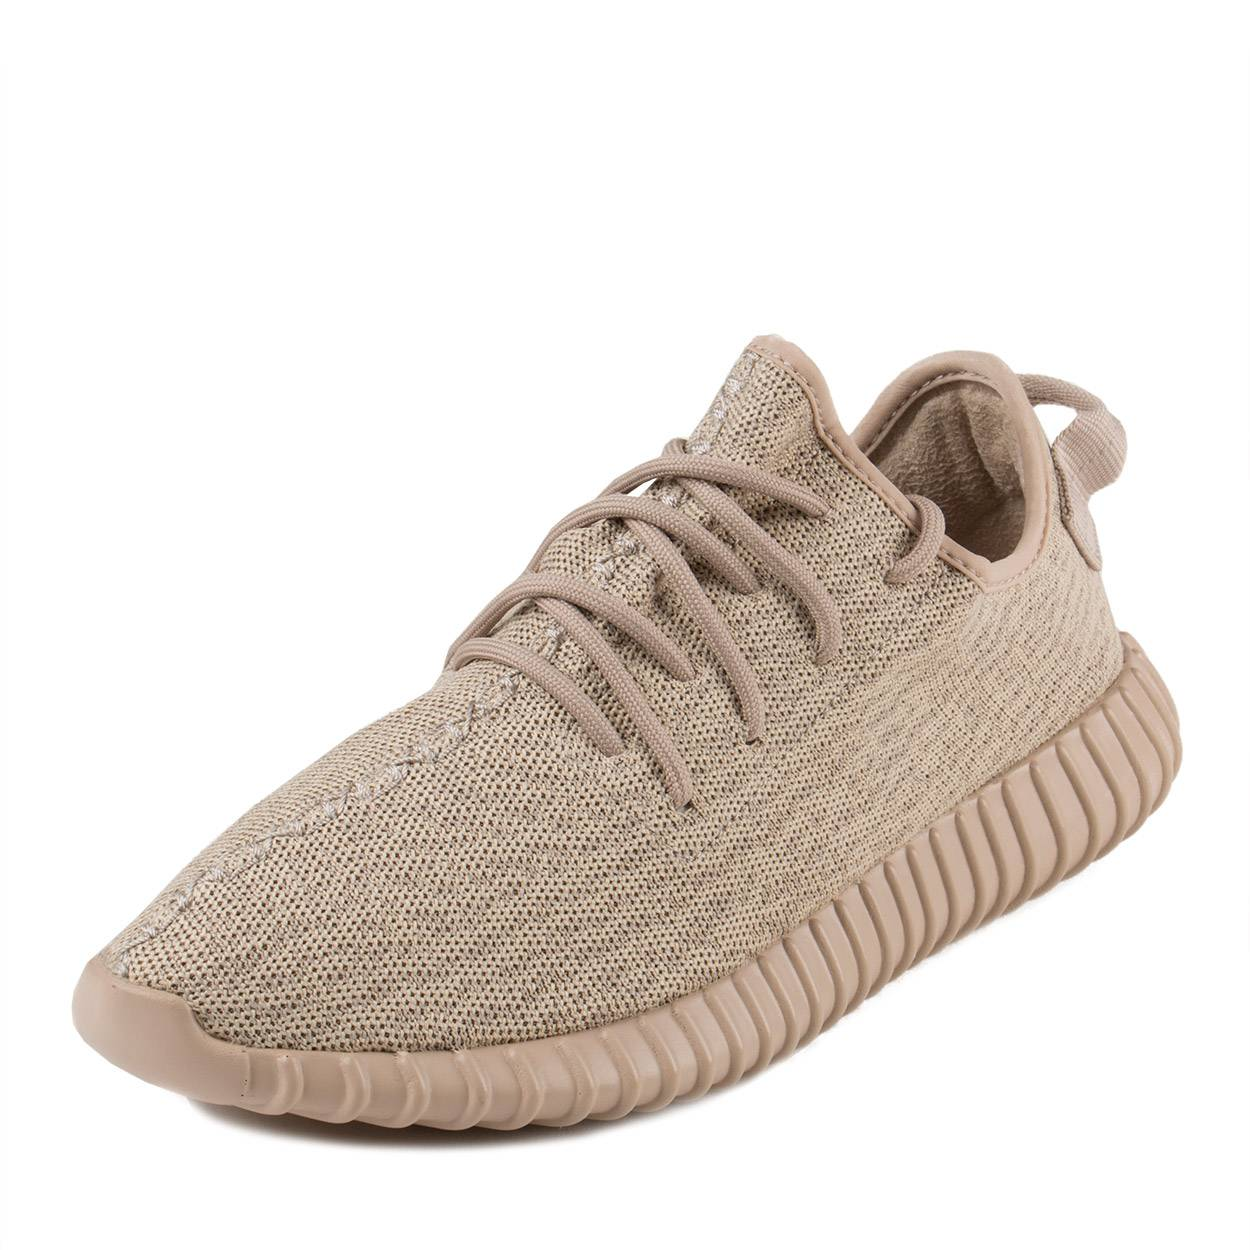 Shop Cheap Adidas yeezy boost 350 bb5350 Women Shoes For Sale 2016